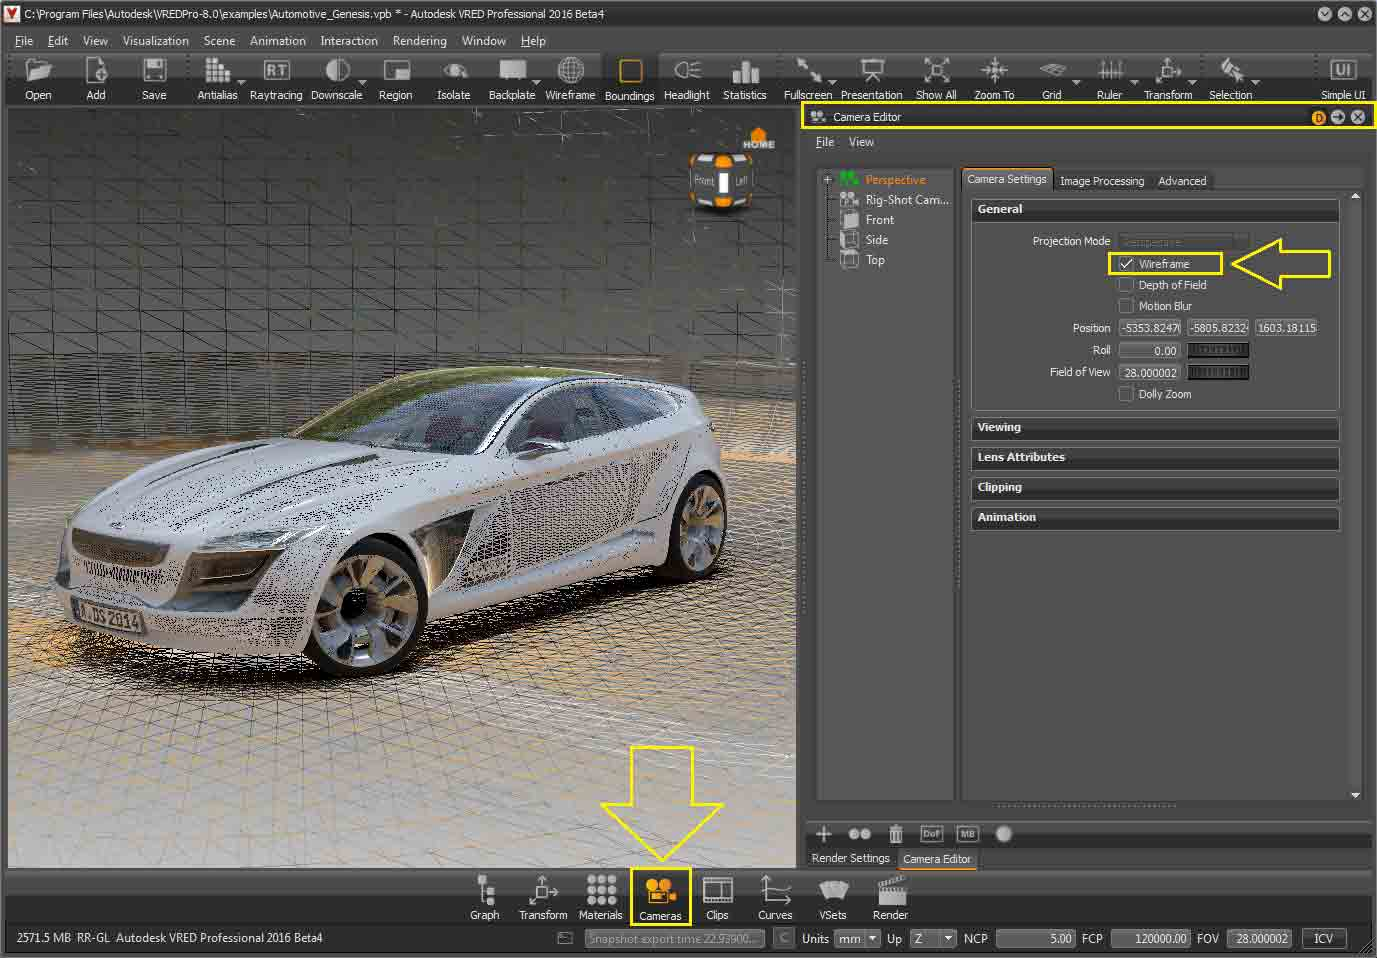 Autodesk VRED Products